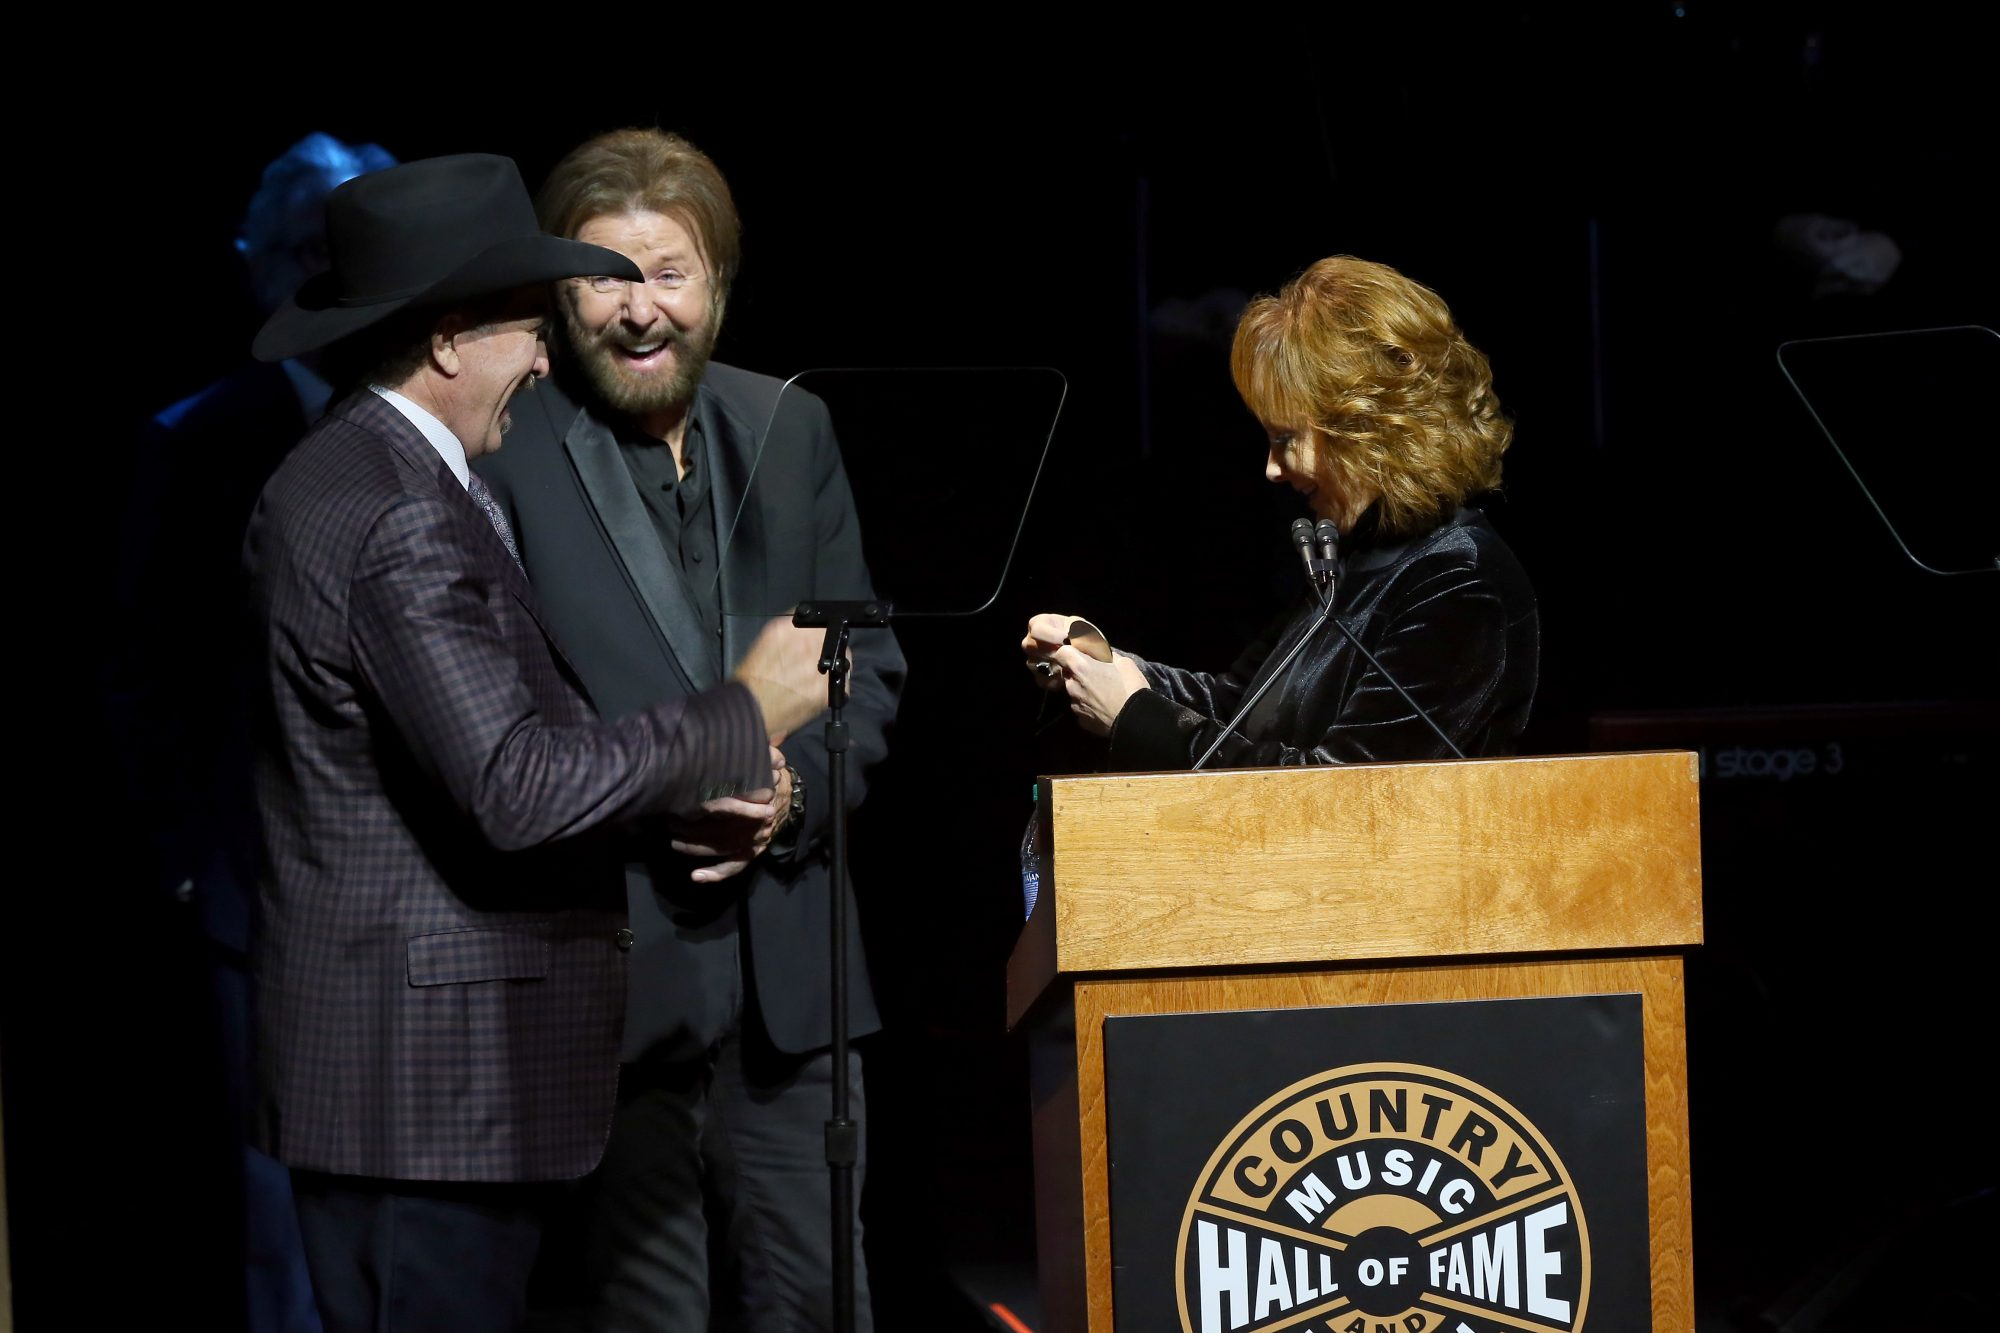 Brooks and Dunn and Reba McEntire